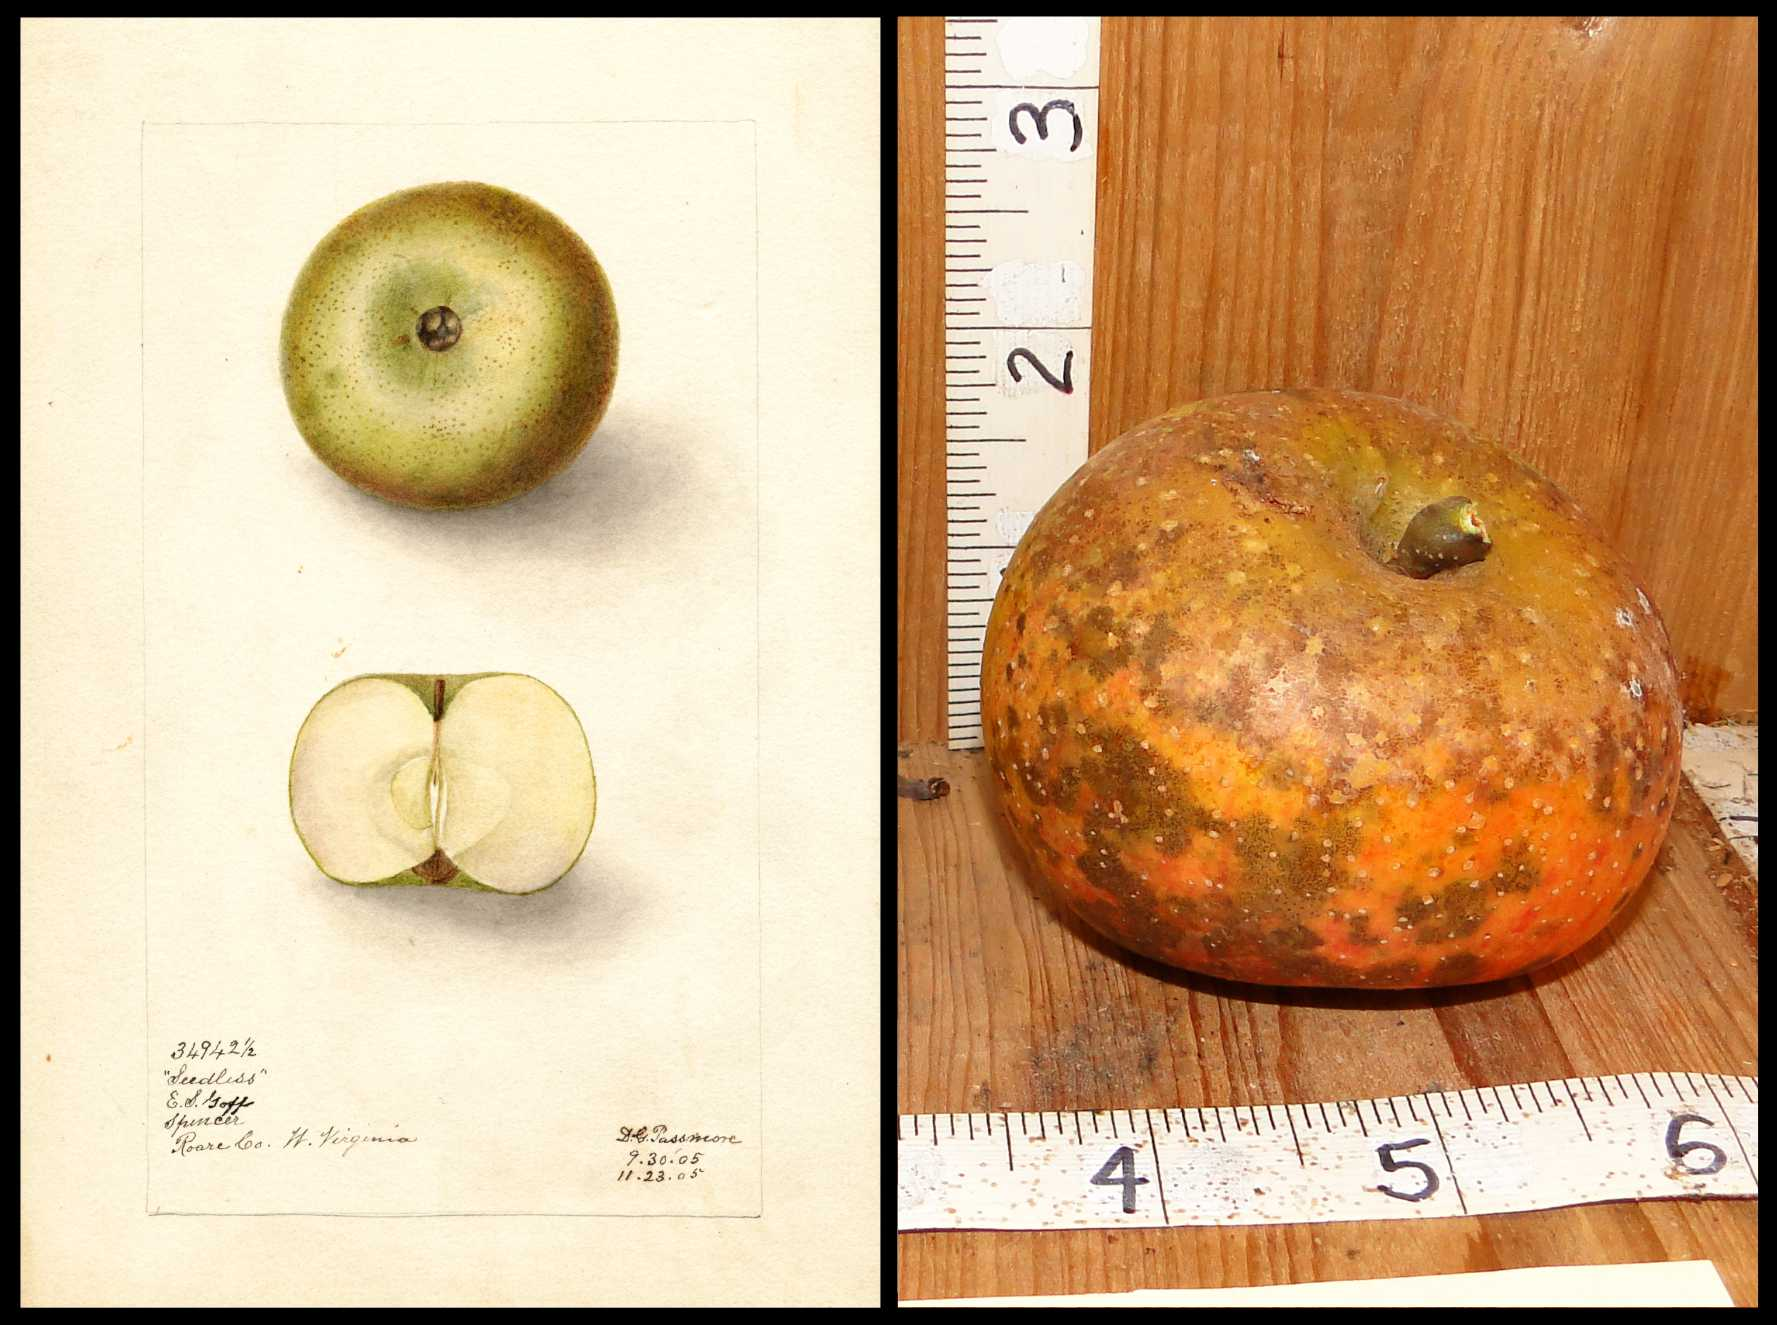 apple with very mottled skin showing patches of yellow green orange and red with some spots of rough tan skin